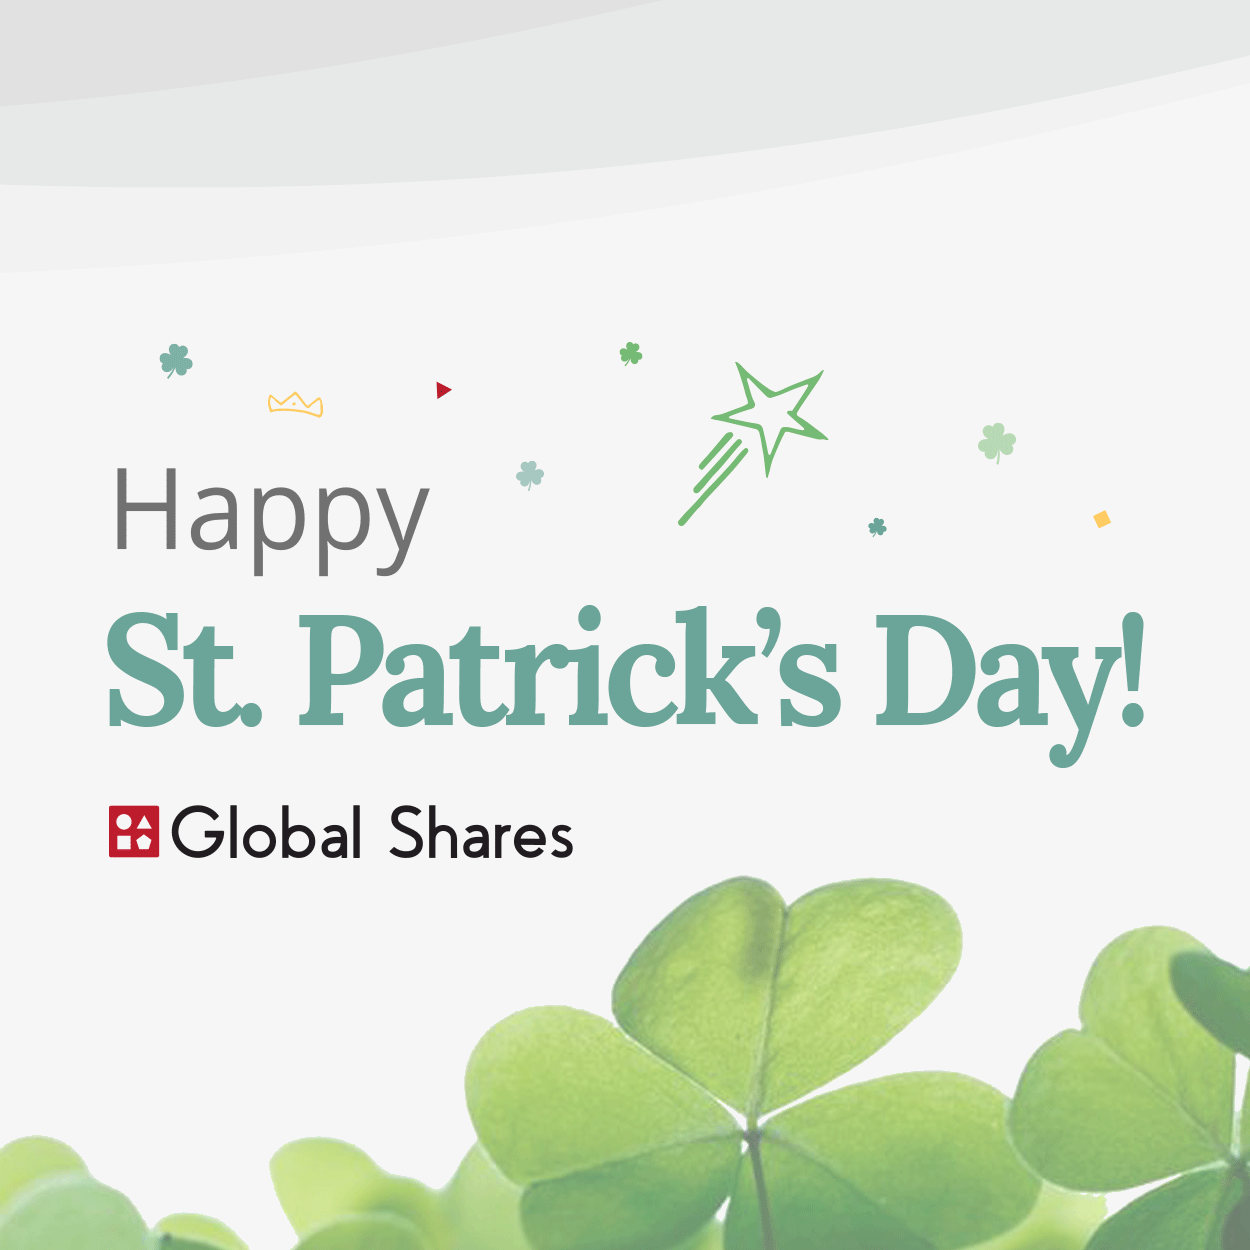 Picture with text saying Happy St Patricks Day with Global Shares logo below and shamrocks in the bottom